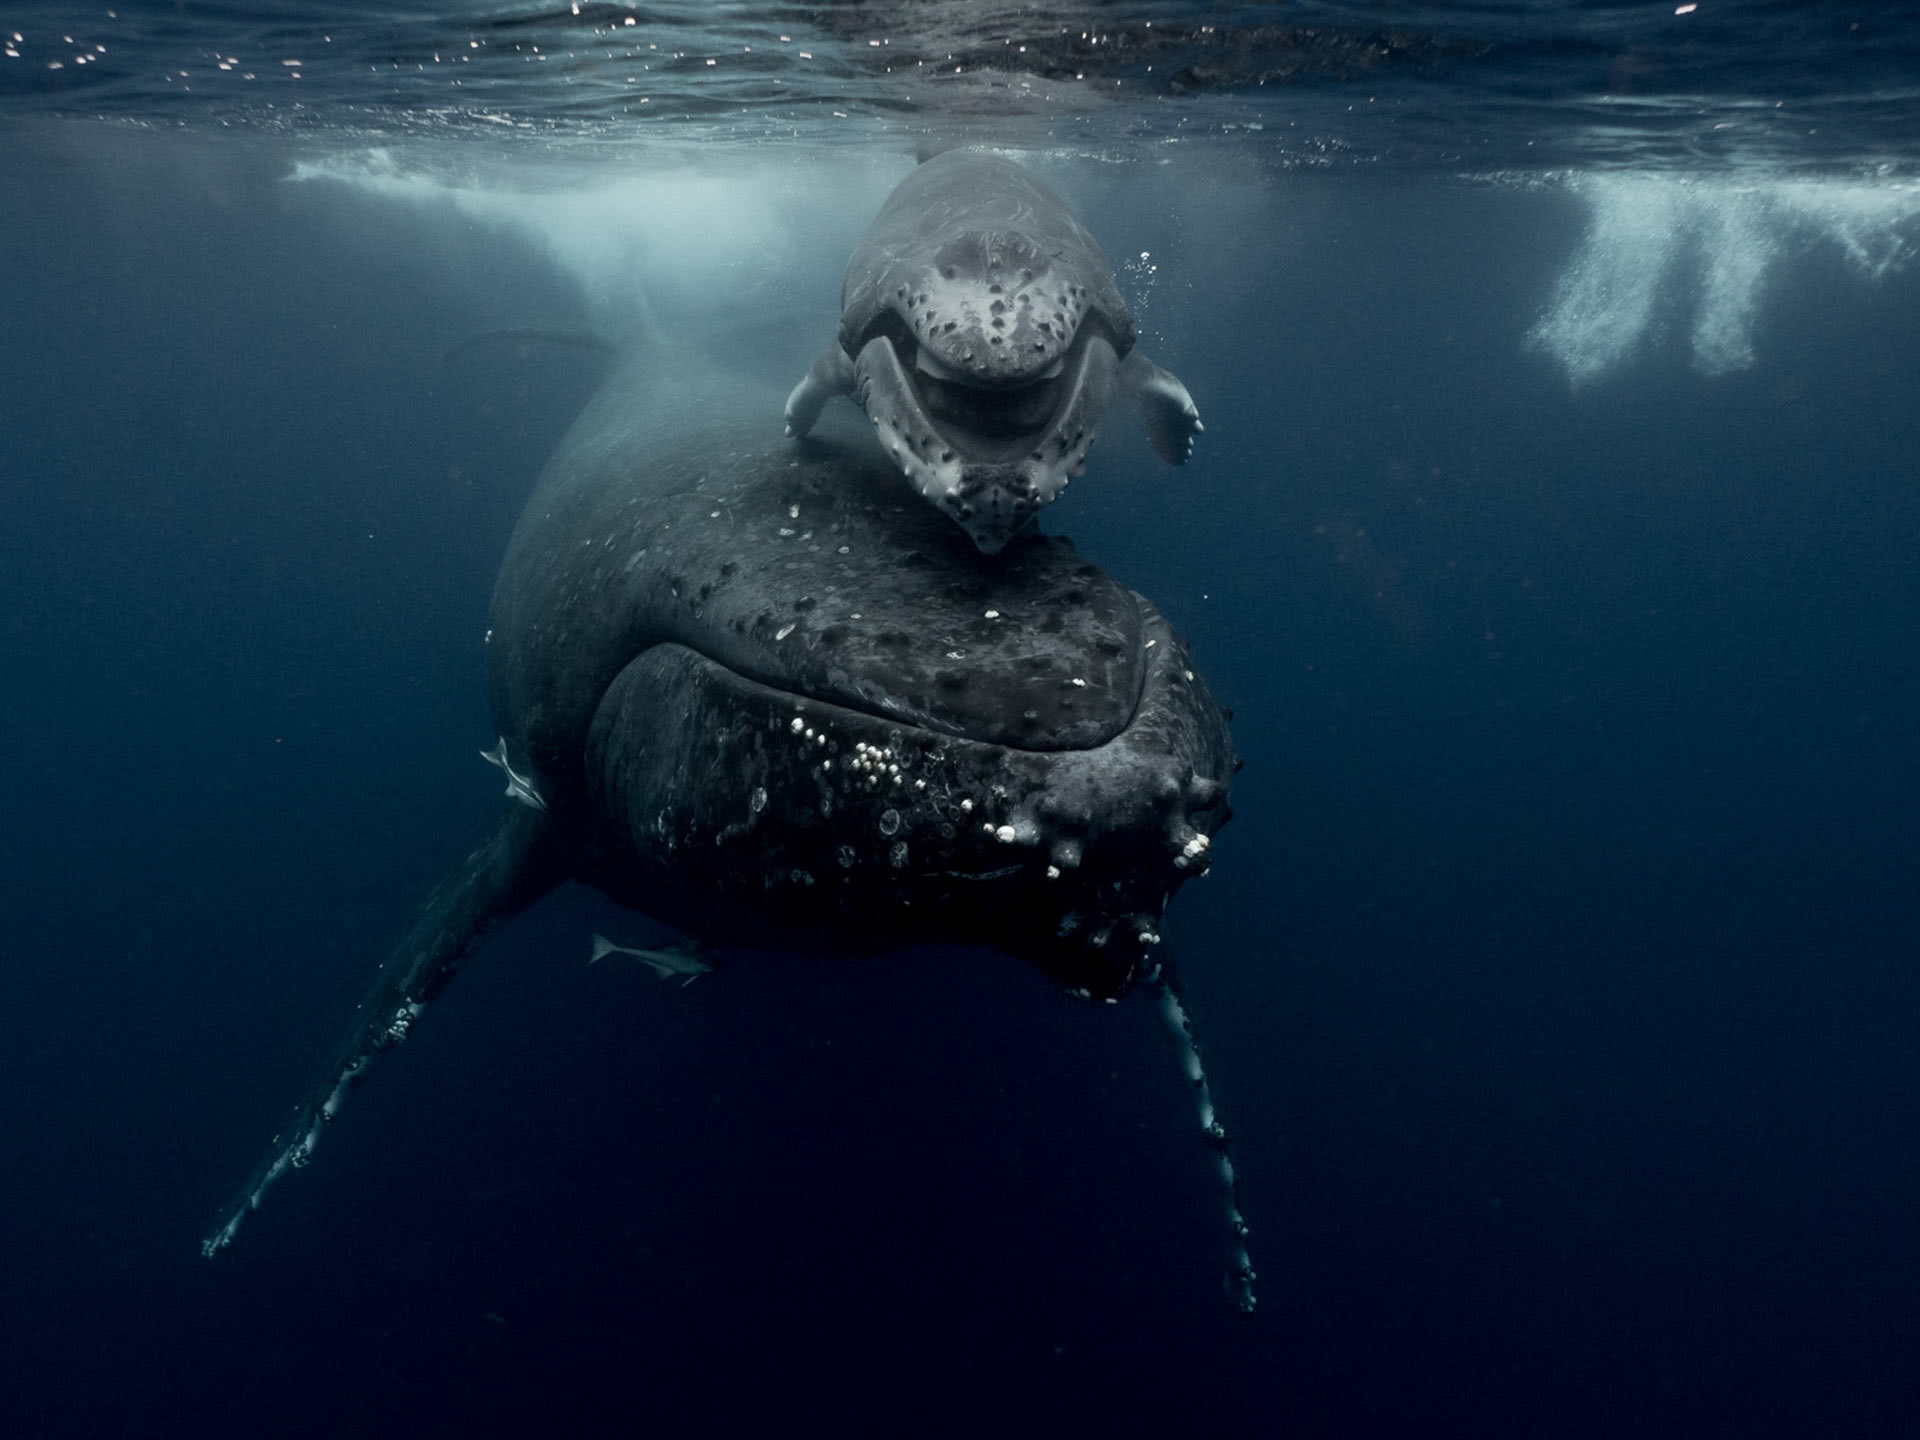 humpback whale calf - smiling, Antarctica - crab seal rests on floating ice, michaela skovranova, @mishkusk